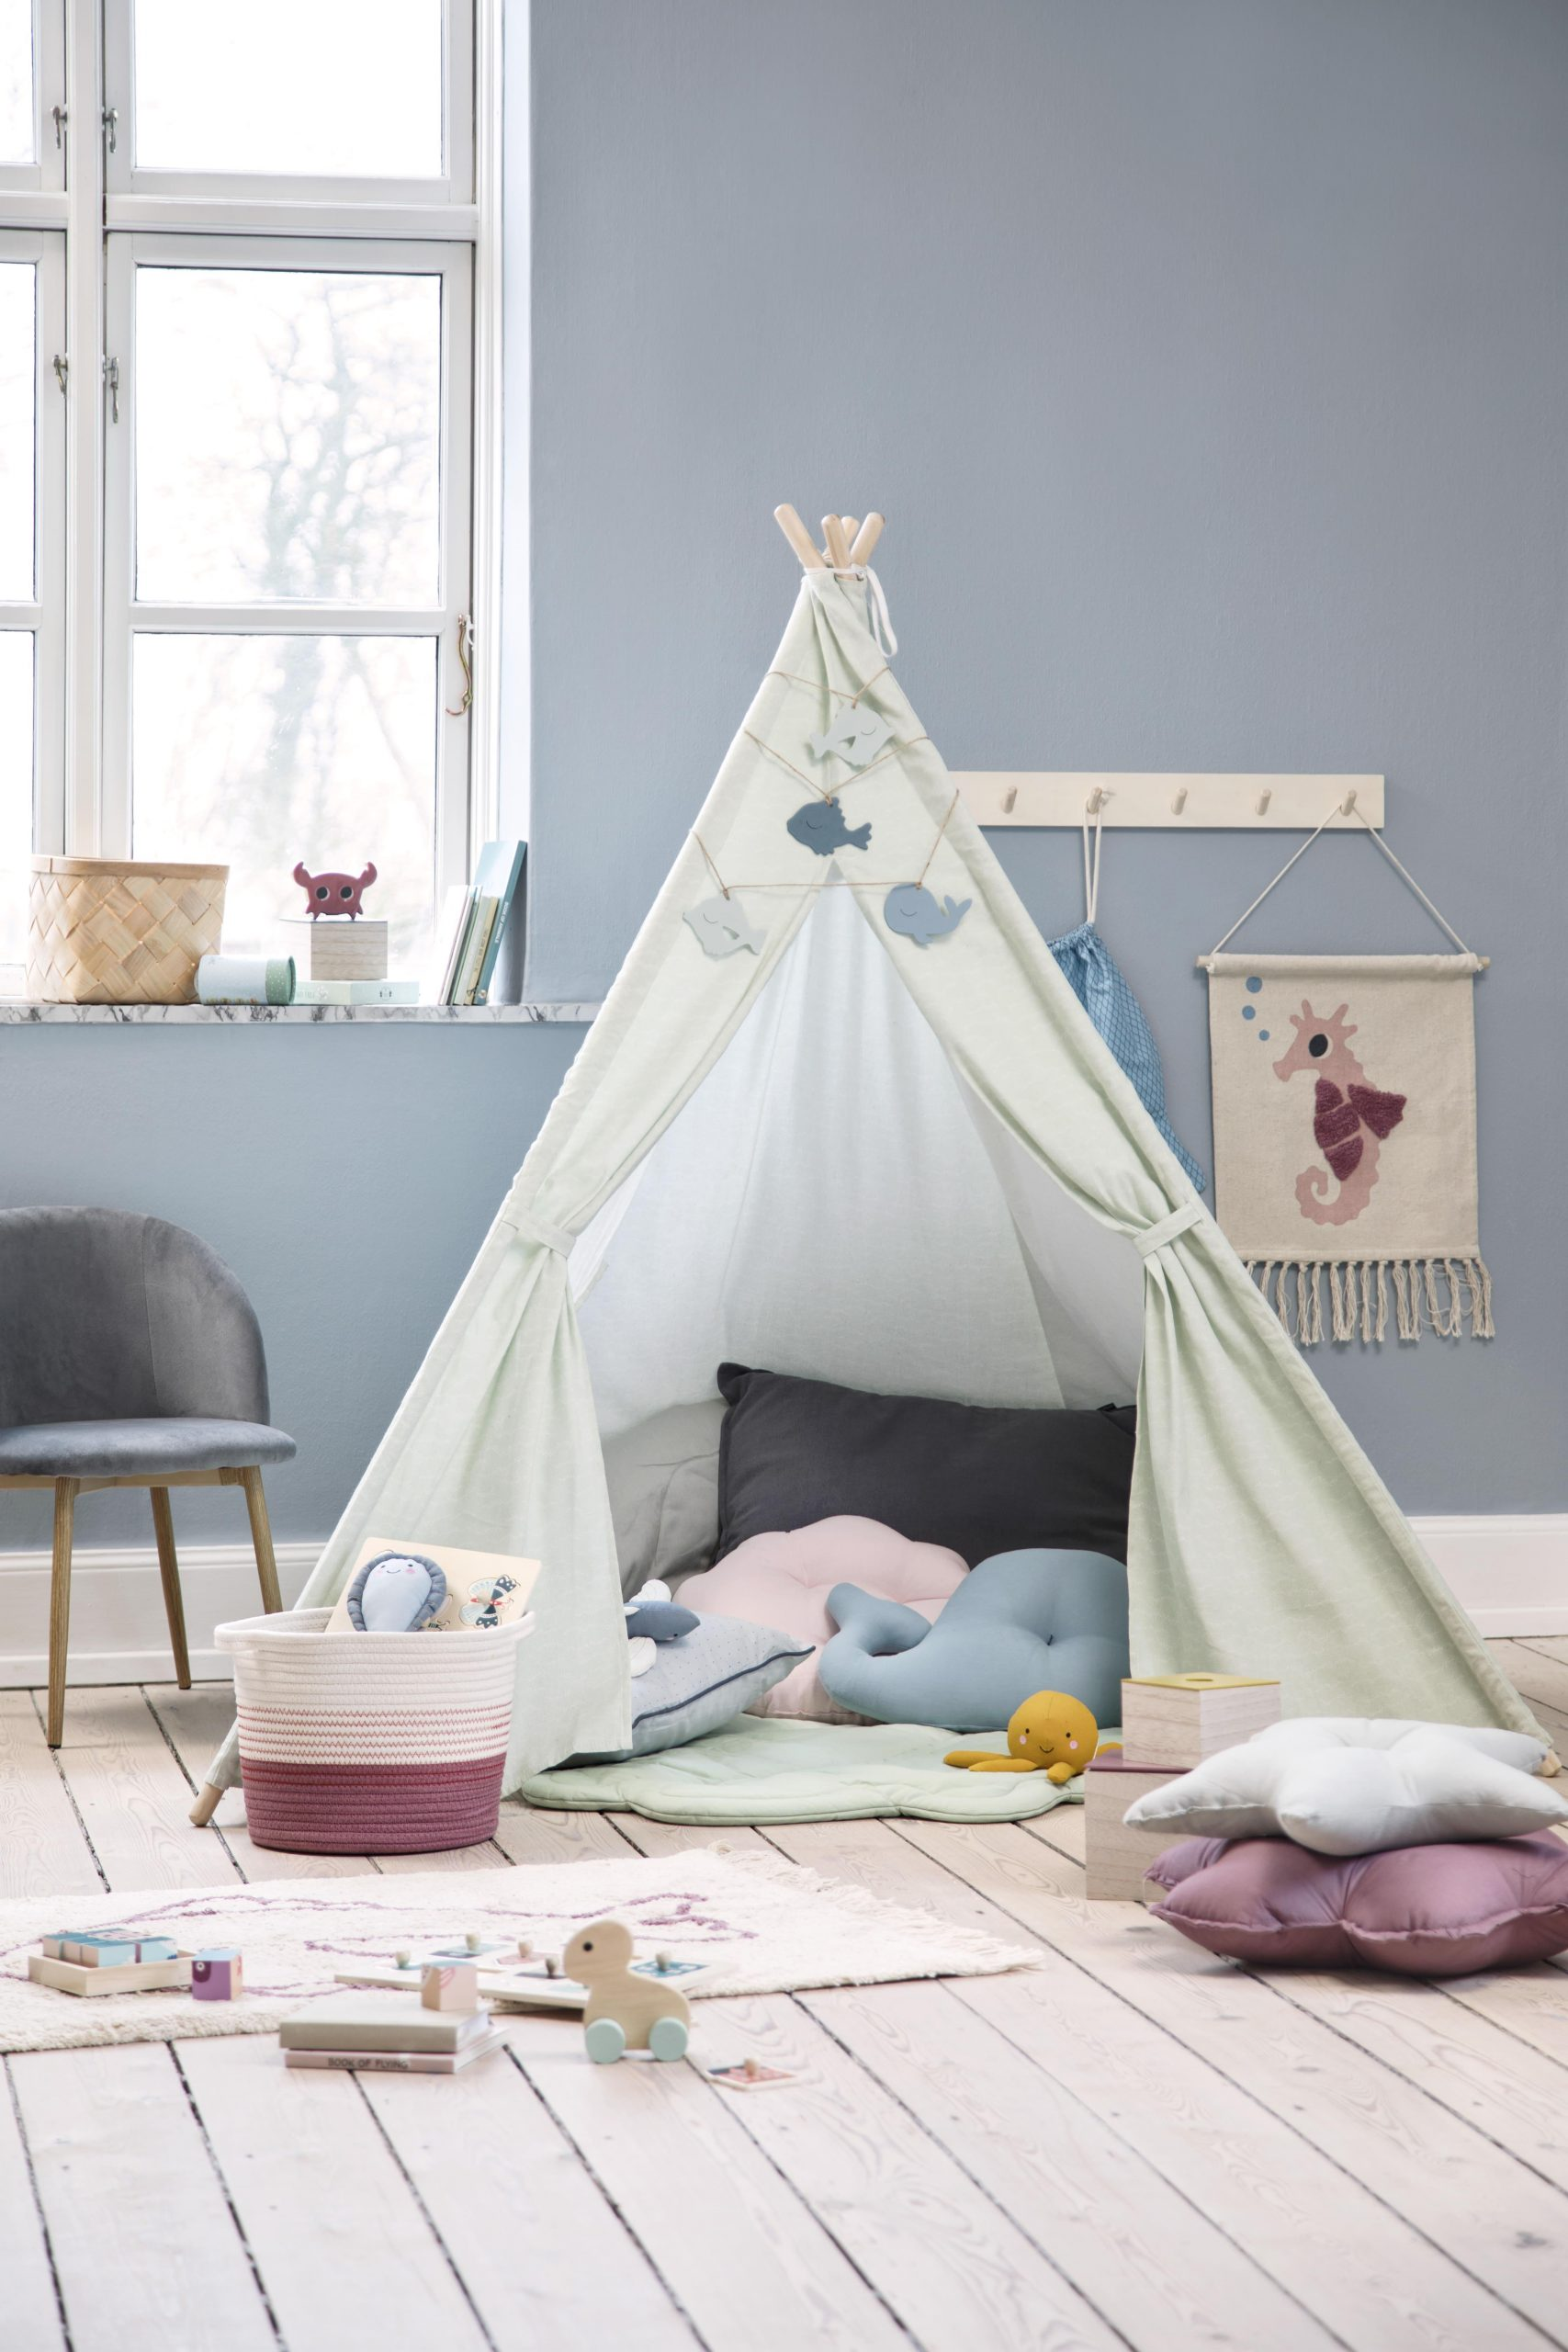 Available 23 April 2020 SostreneGrene 02 min 4480x6720 1 scaled - Sostrene Grene - Kinderinterieur en Speelgoed Collectie 2020